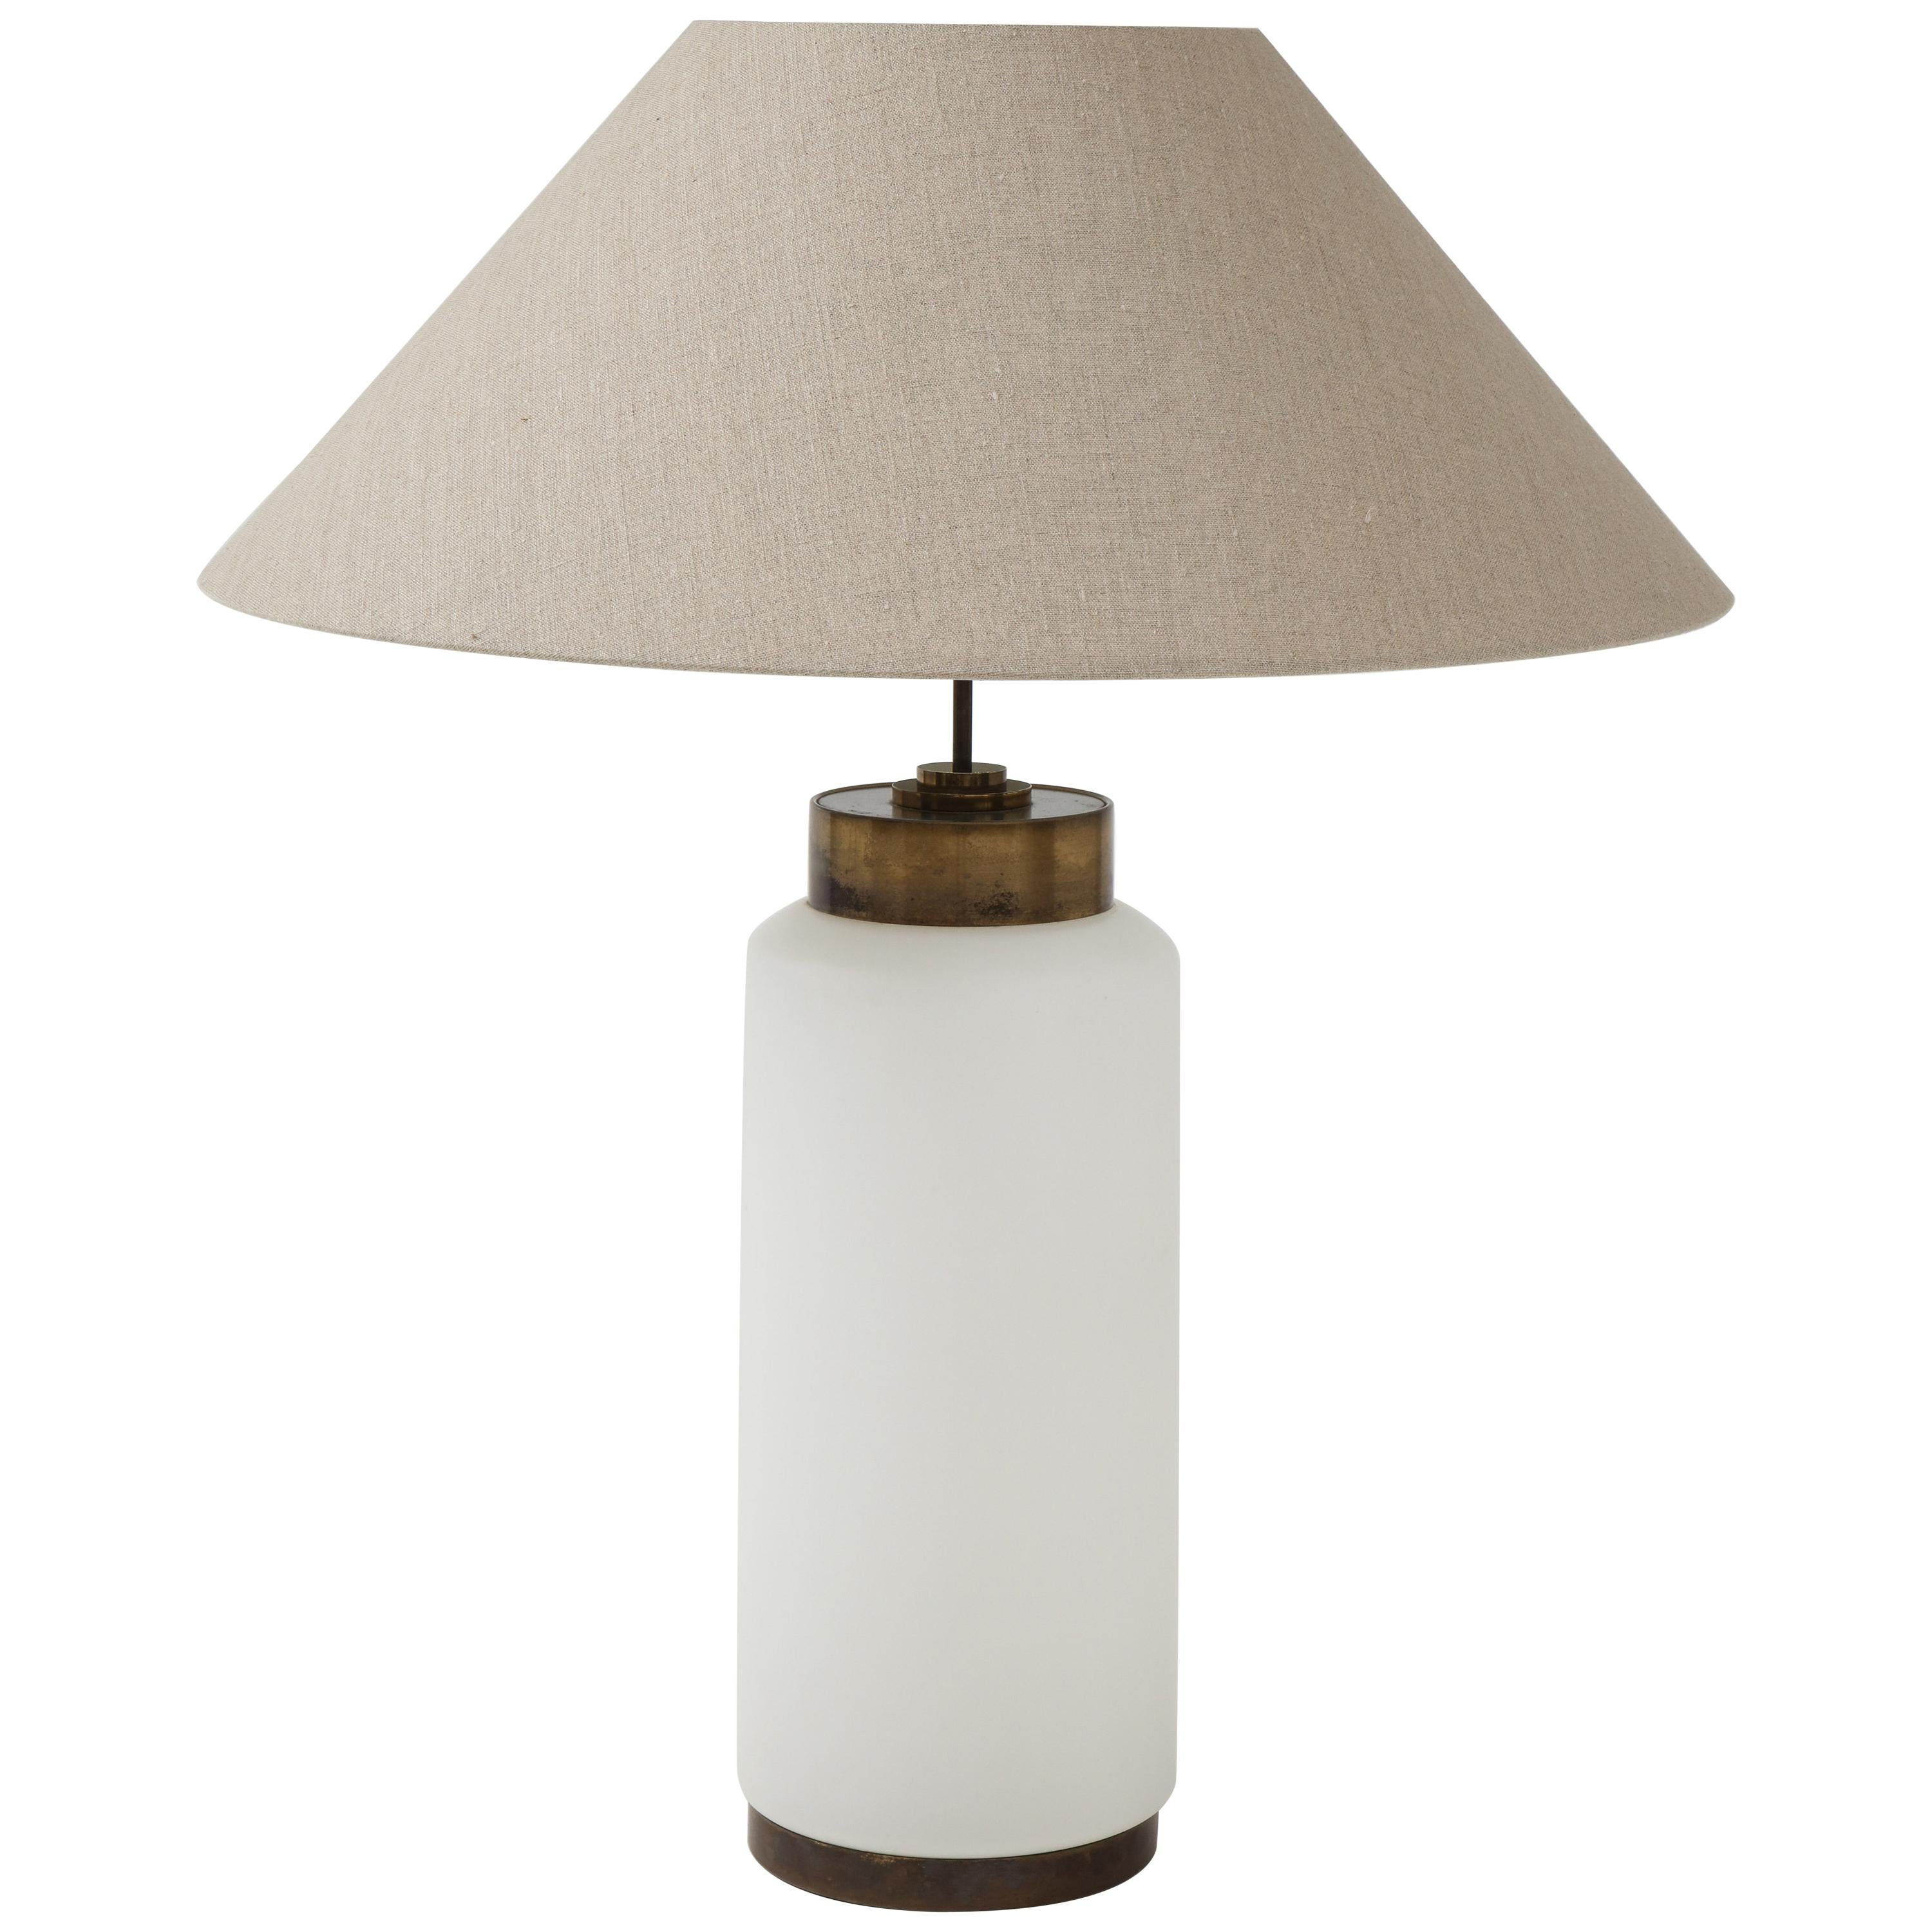 Italian White Opaline Glass and Brass Large Lamp with Belgian Linen Shade